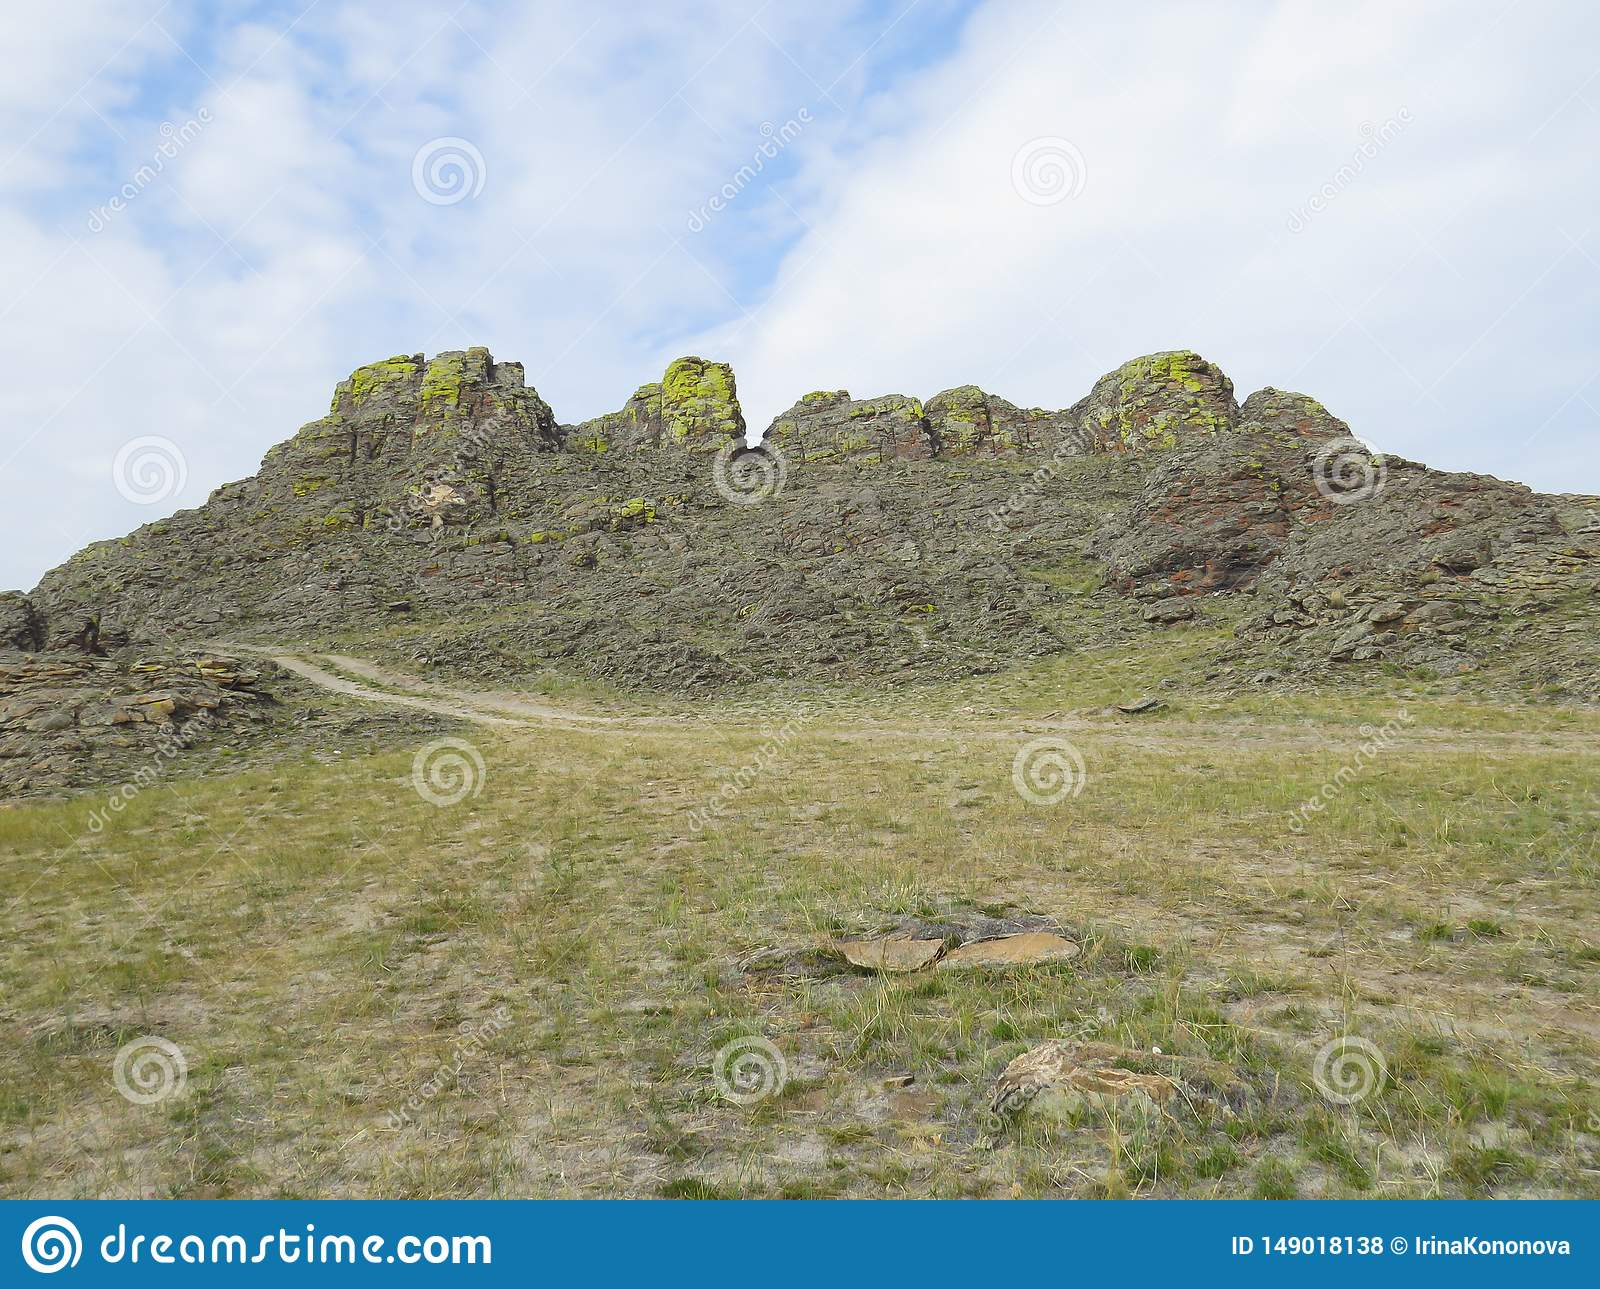 Rocks covered with lichen, in the Castle of Spirits, the place of power of Olkhon island